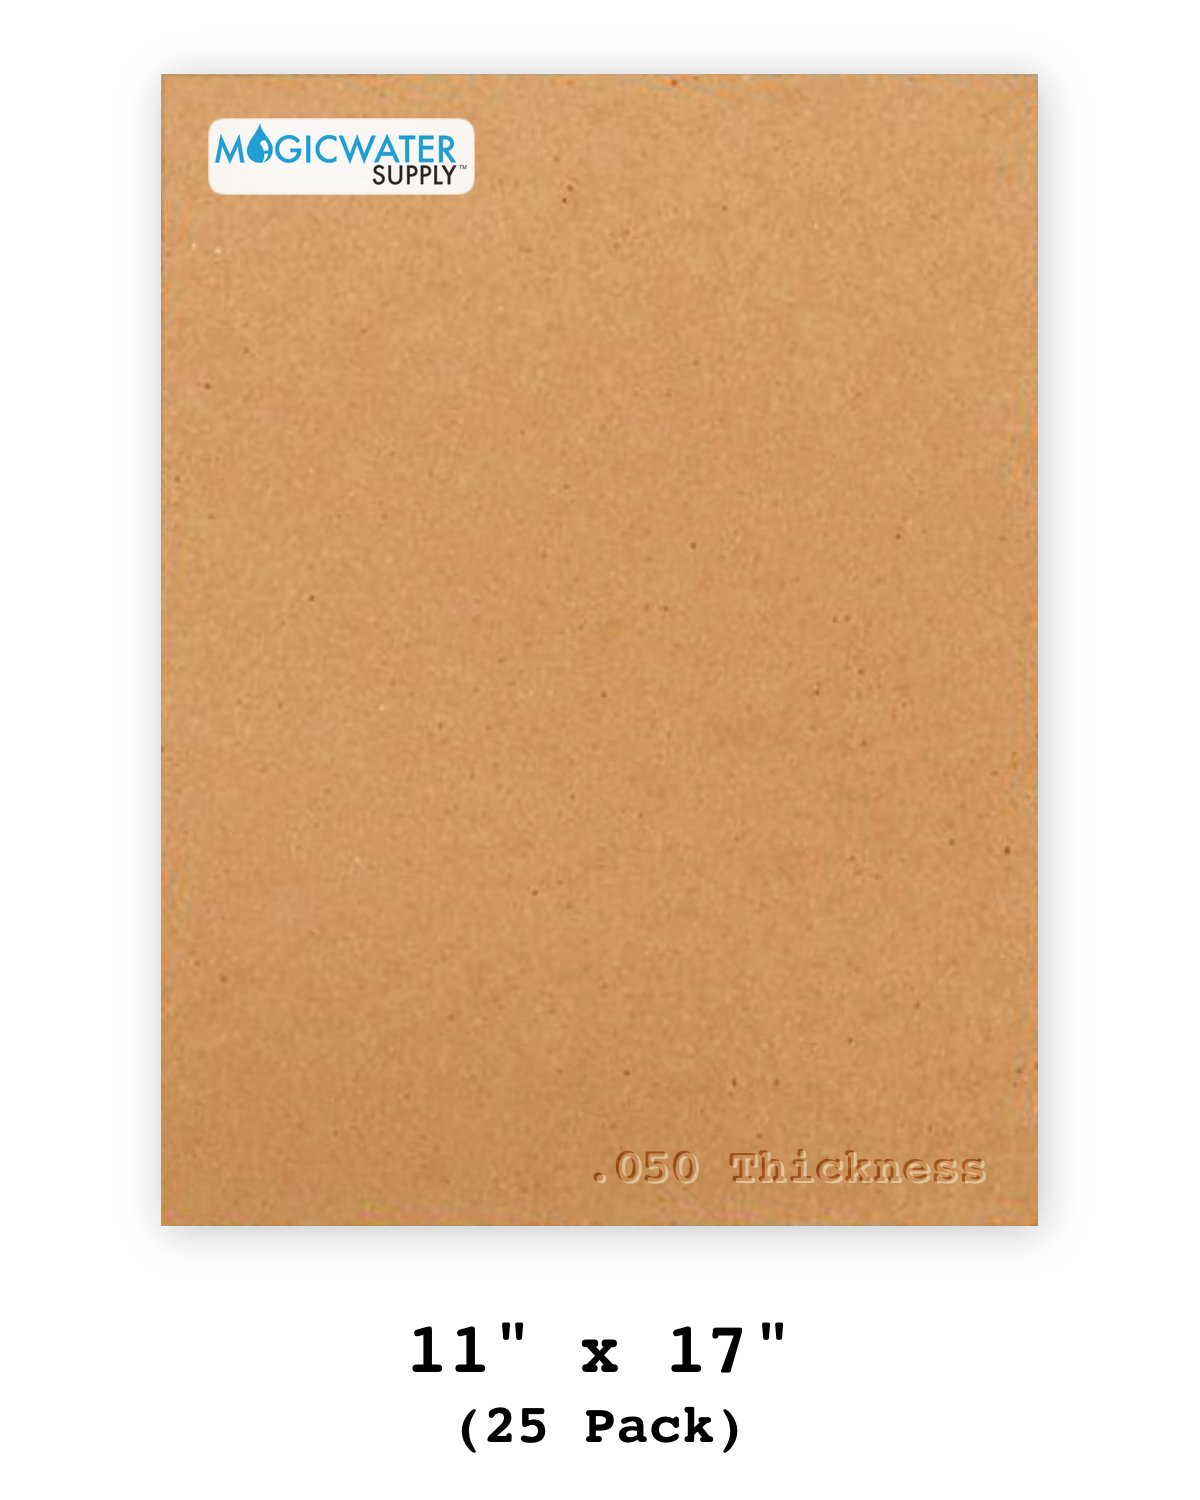 25 Chipboard Sheets 11 x 17 inch - 50pt (Point) Heavy Weight Brown Kraft Cardboard for Scrapbooking & Picture Frame Backing (.050 Caliper Thick) Paper Board | MagicWater Supply by MagicWater Supply